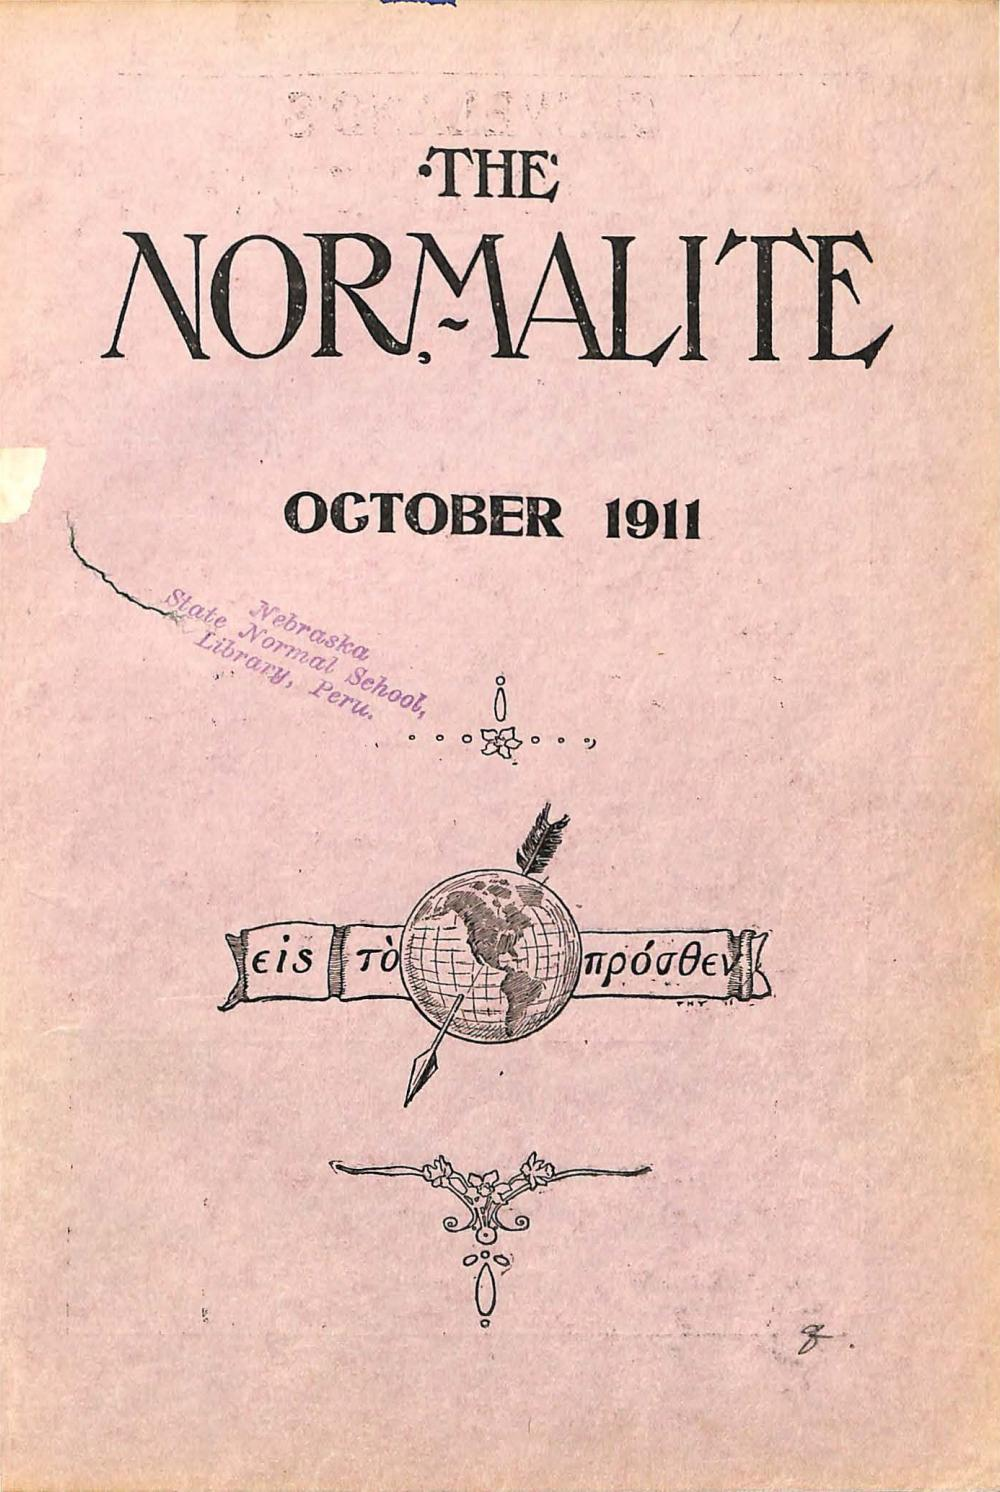 1911-1912 The Normalite - Issues 1-8 by Peru State College Library ...